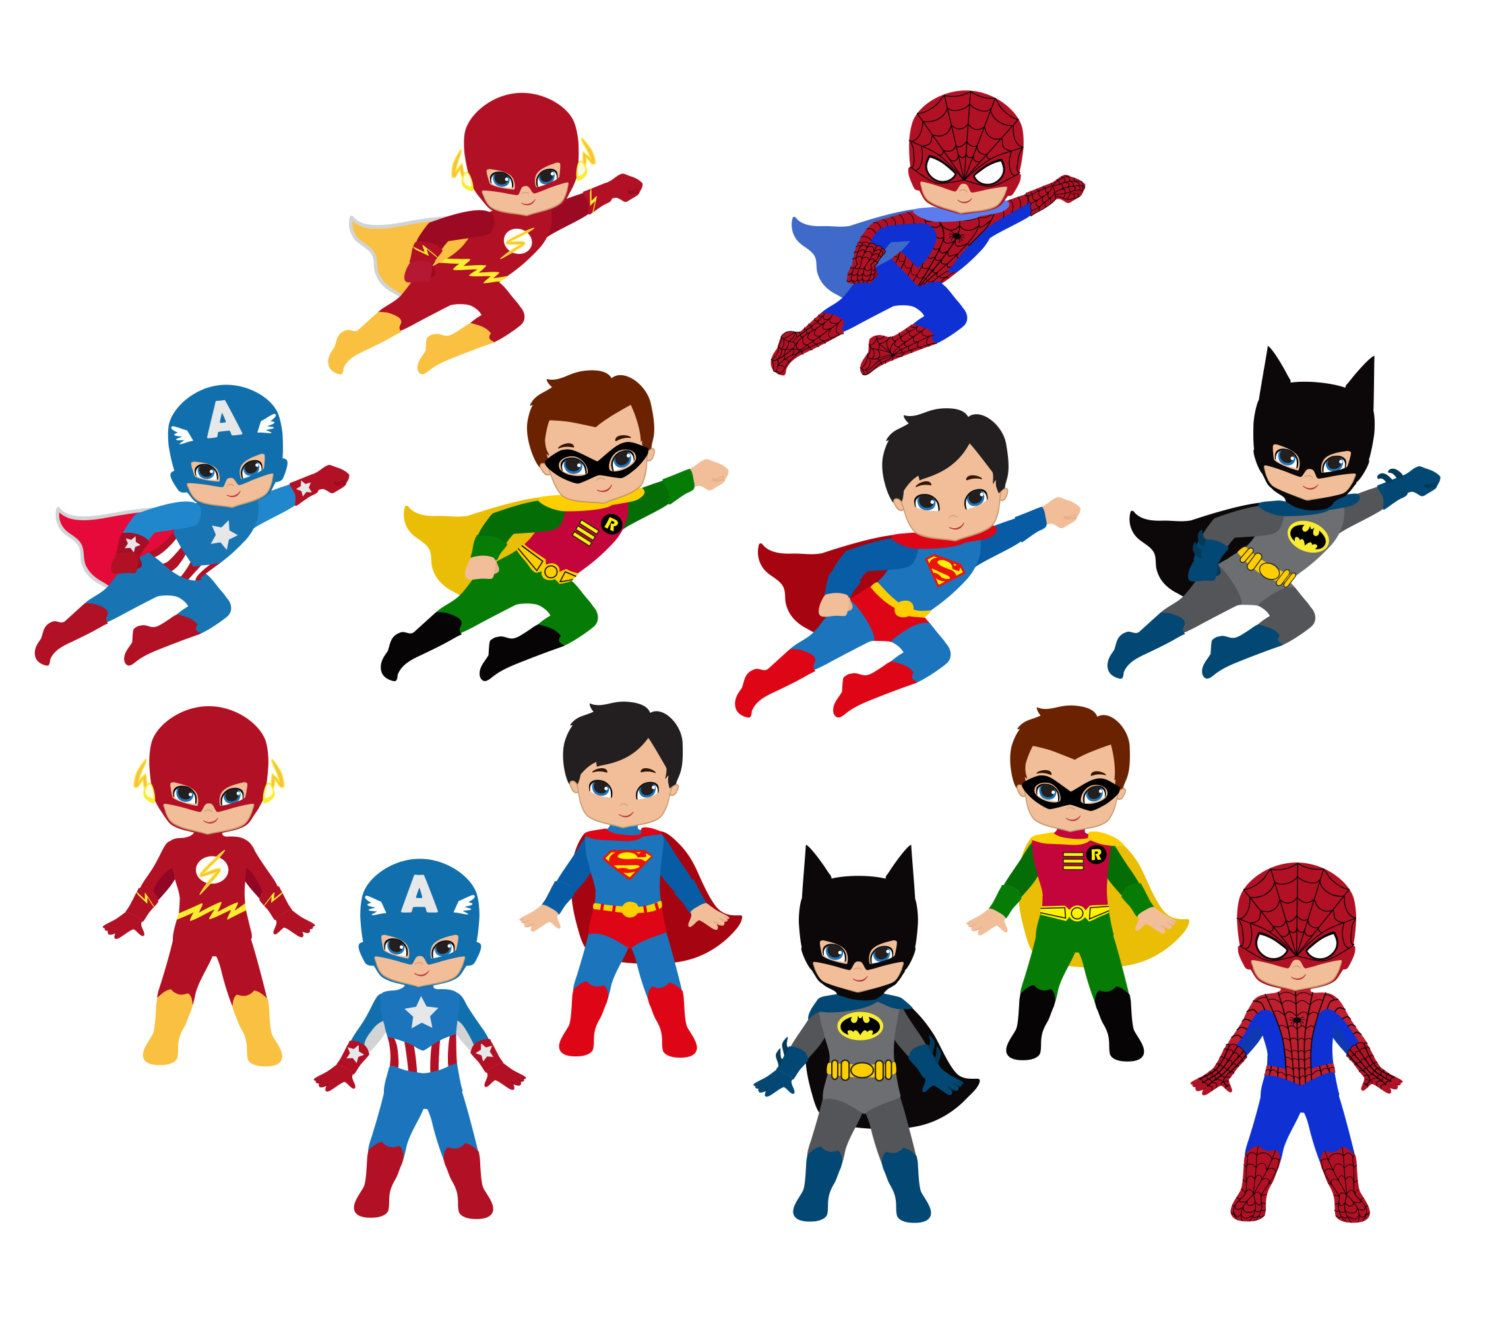 free superhero clipart fonts clipart freebies pinterest rh pinterest com flying superhero kid clipart Female Superhero Clip Art